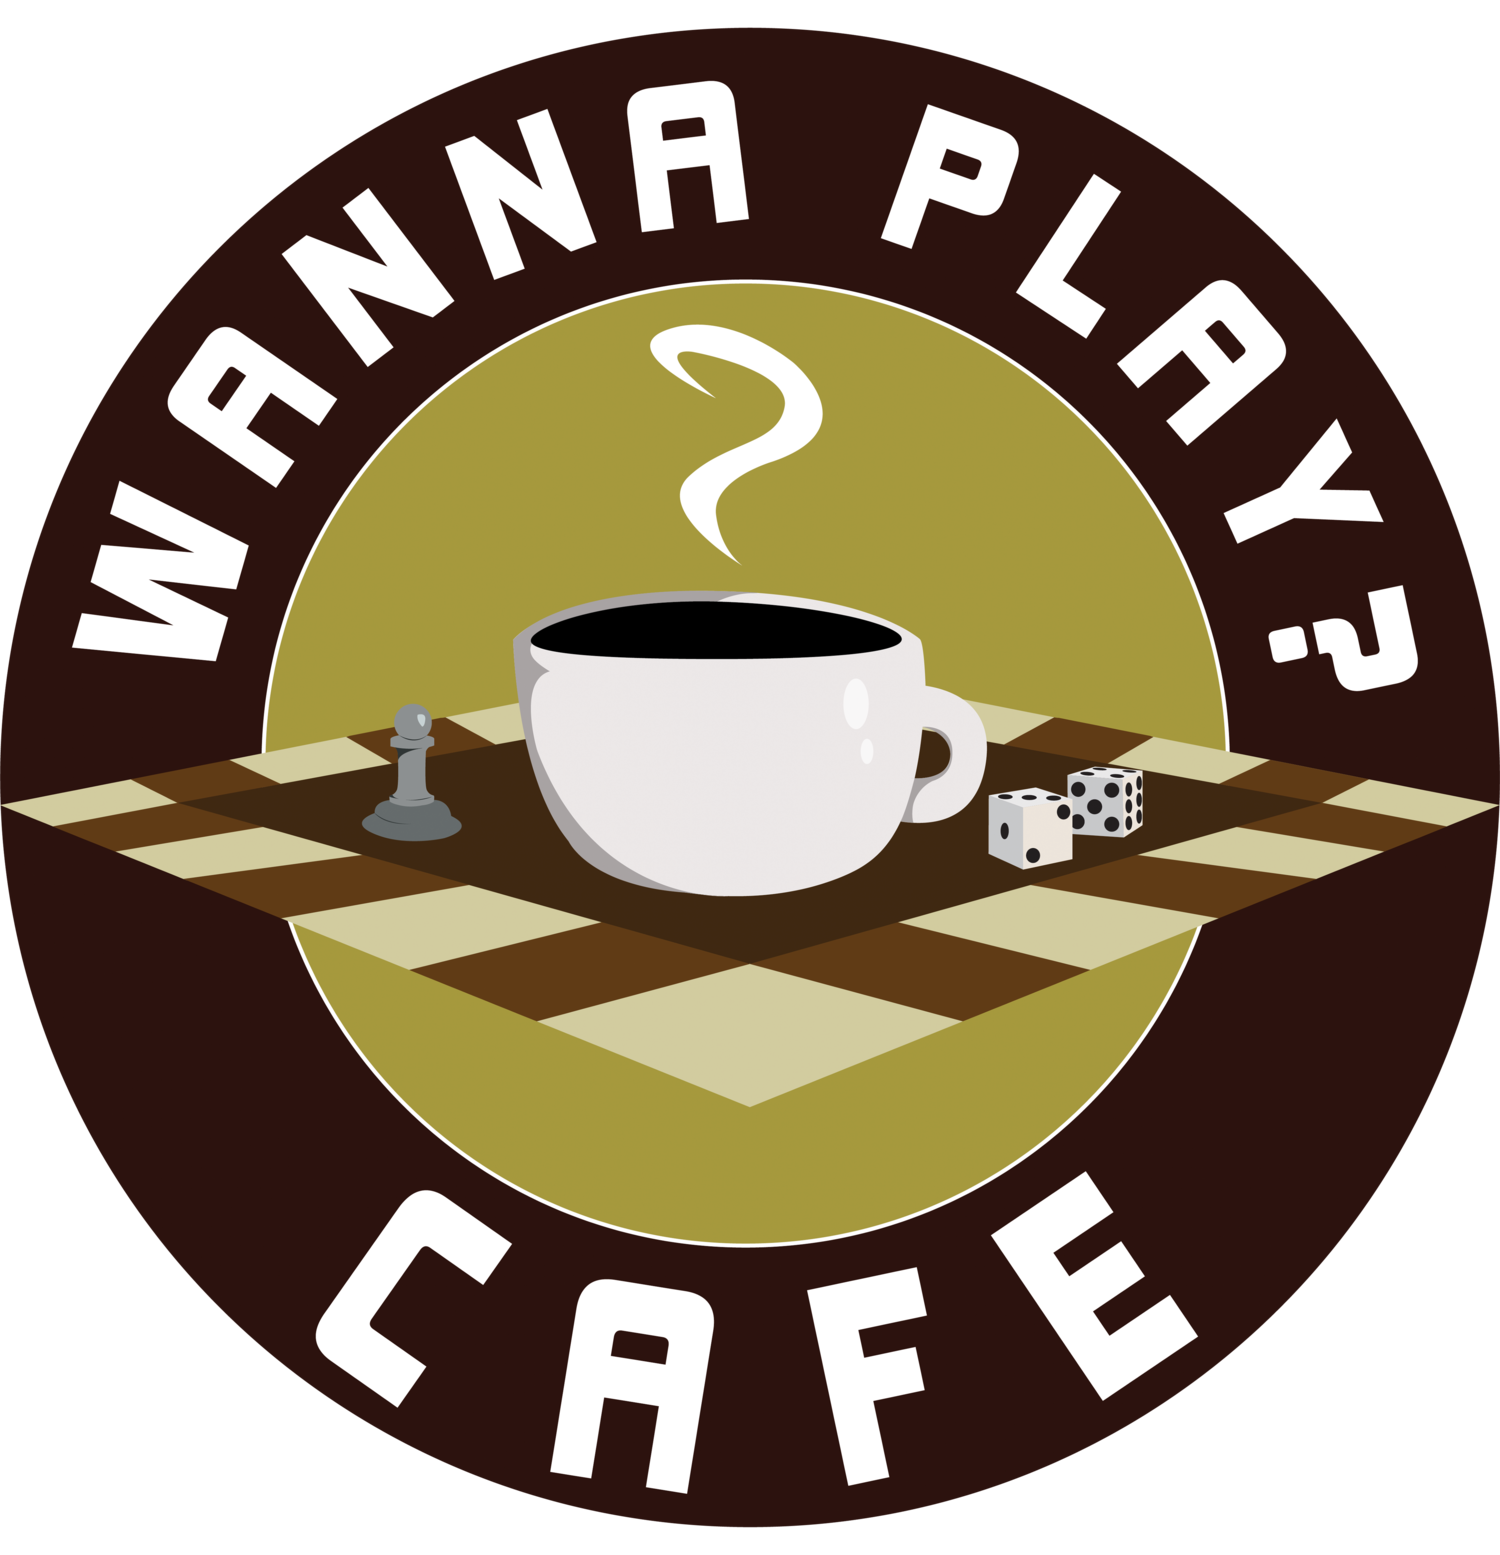 Wanna Play Cafe